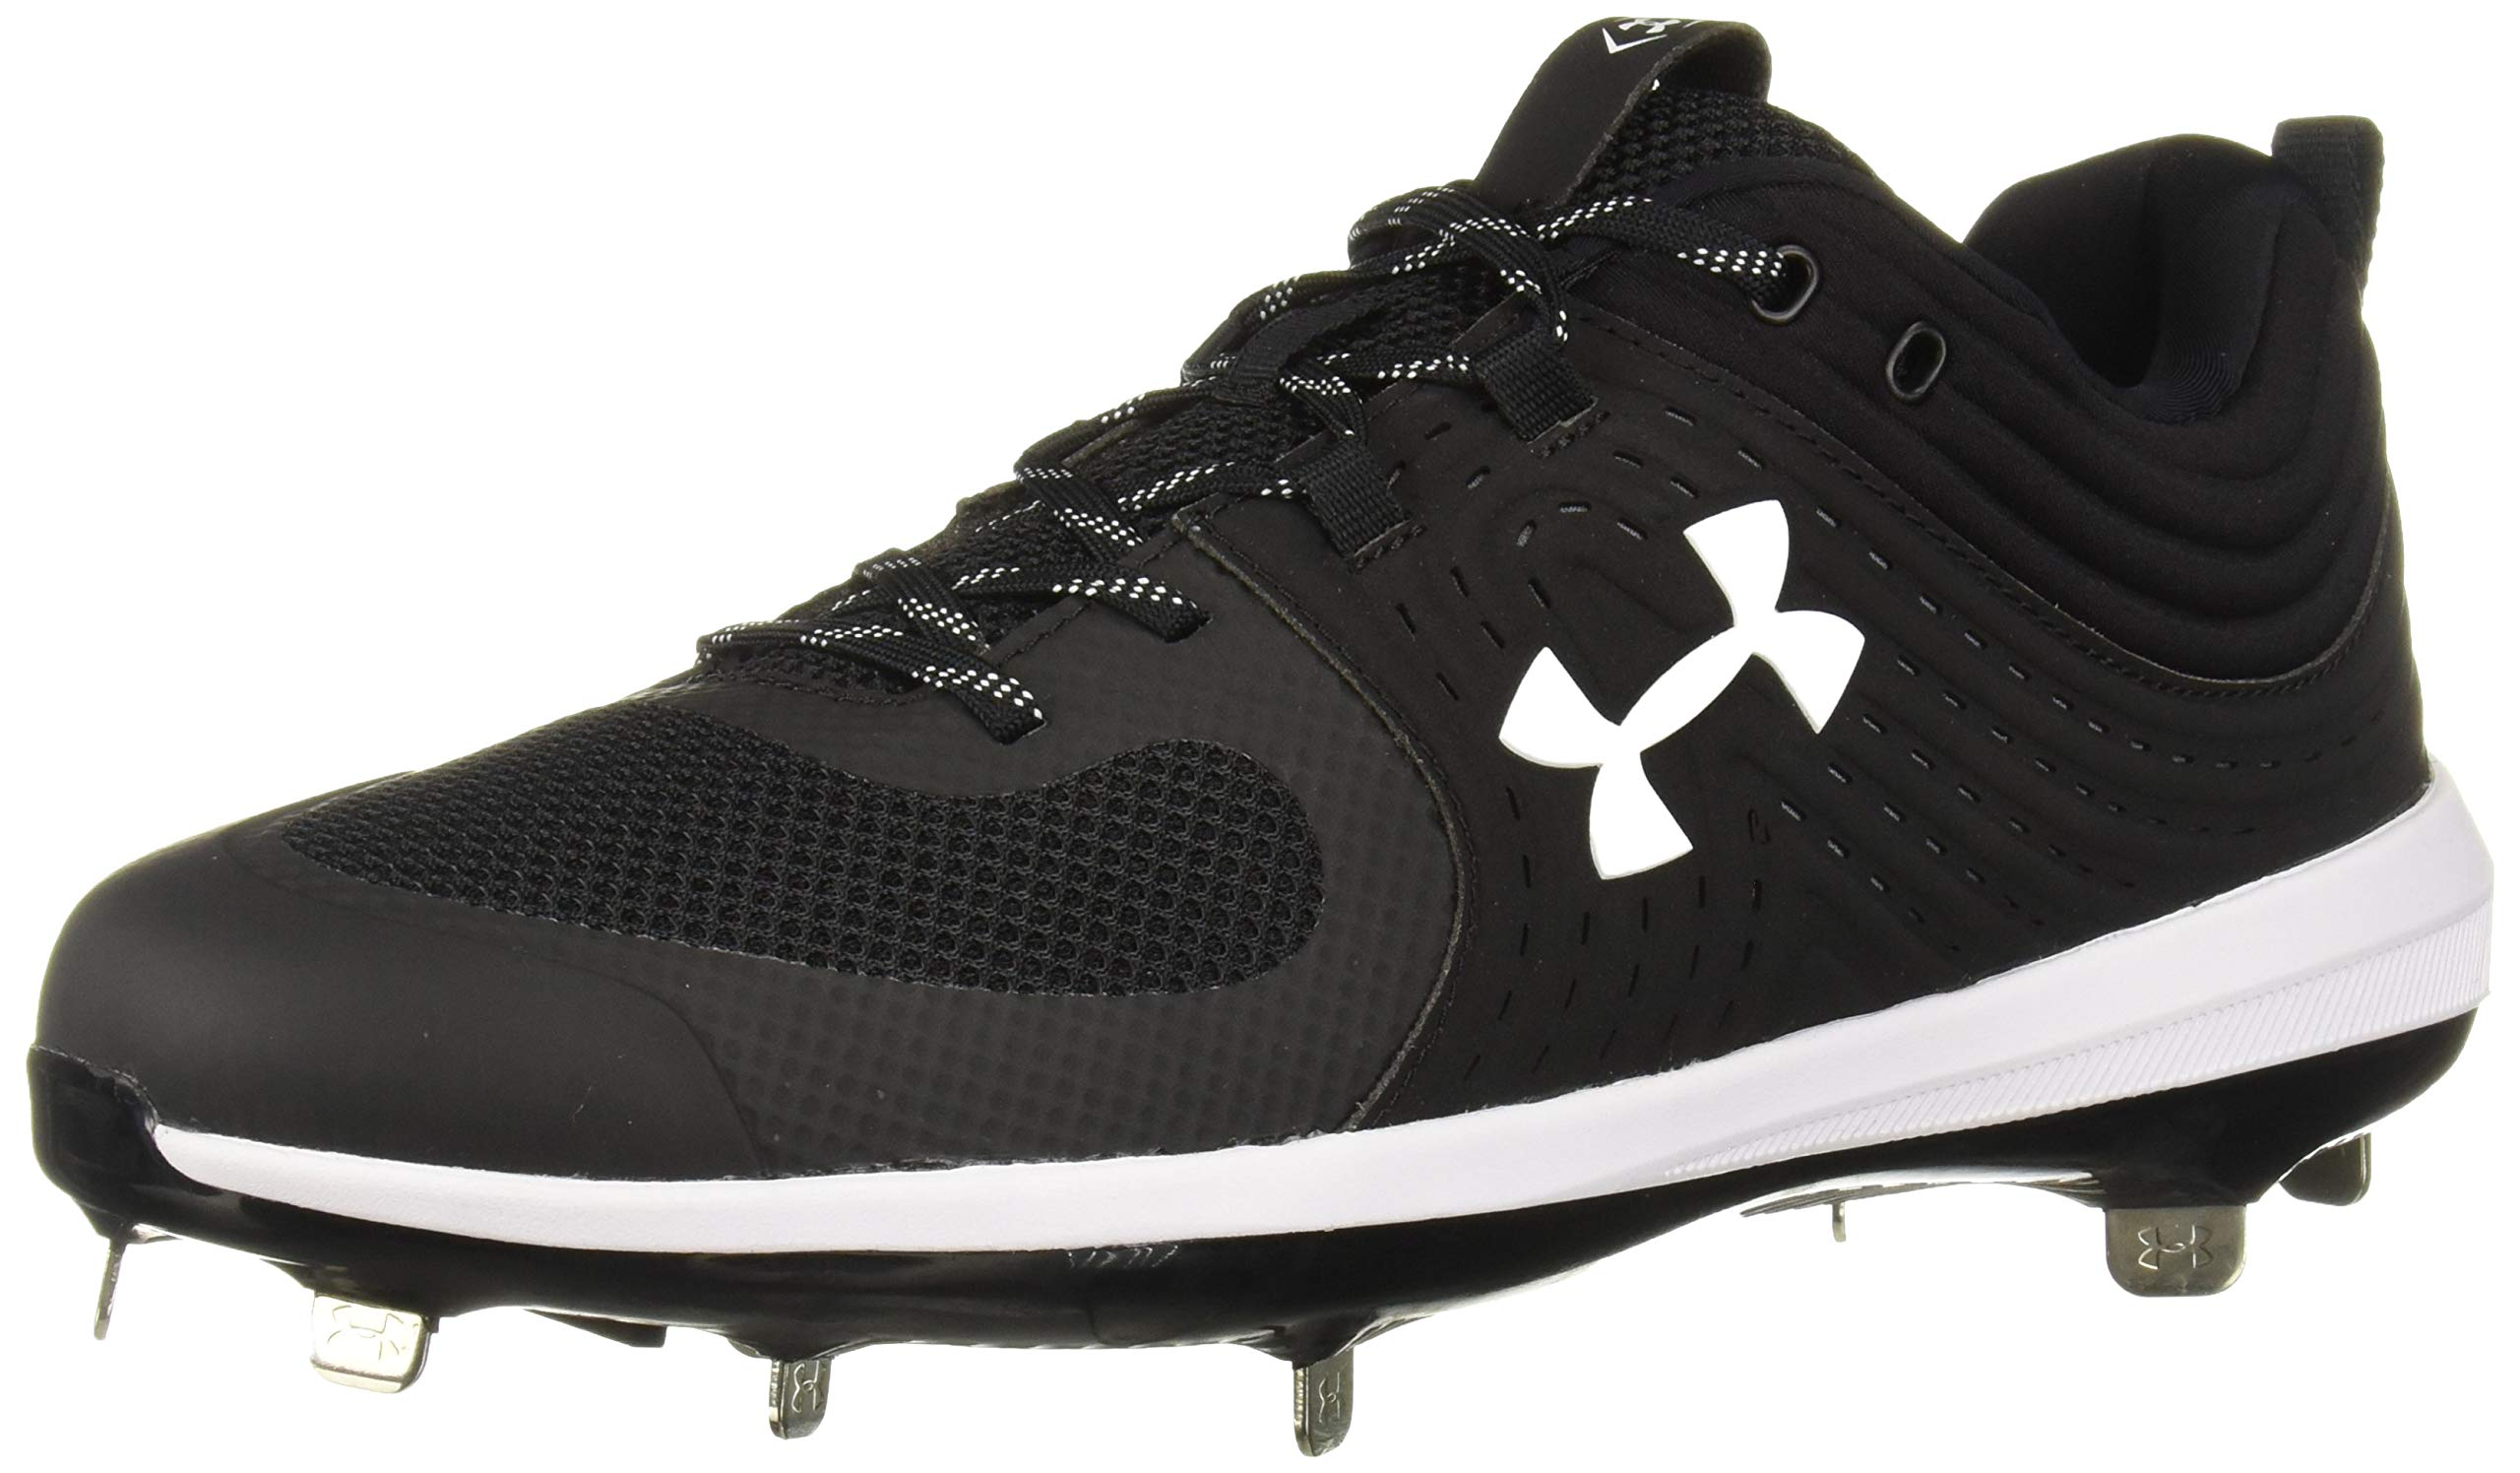 Under Armour Women's Glyde ST Softball Shoe, Black (001)/White, 7.5 by Under Armour